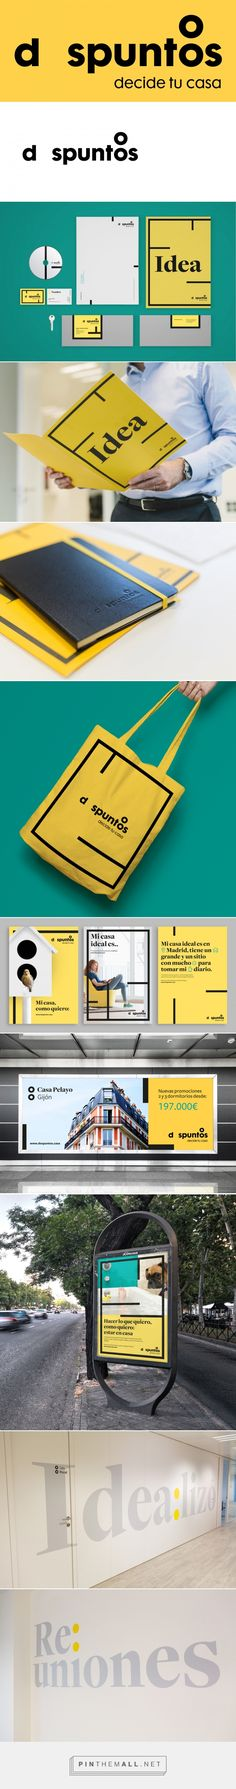 Brand New: New Logo and Identity for dospuntos by Brand Union - created via https://pinthemall.net